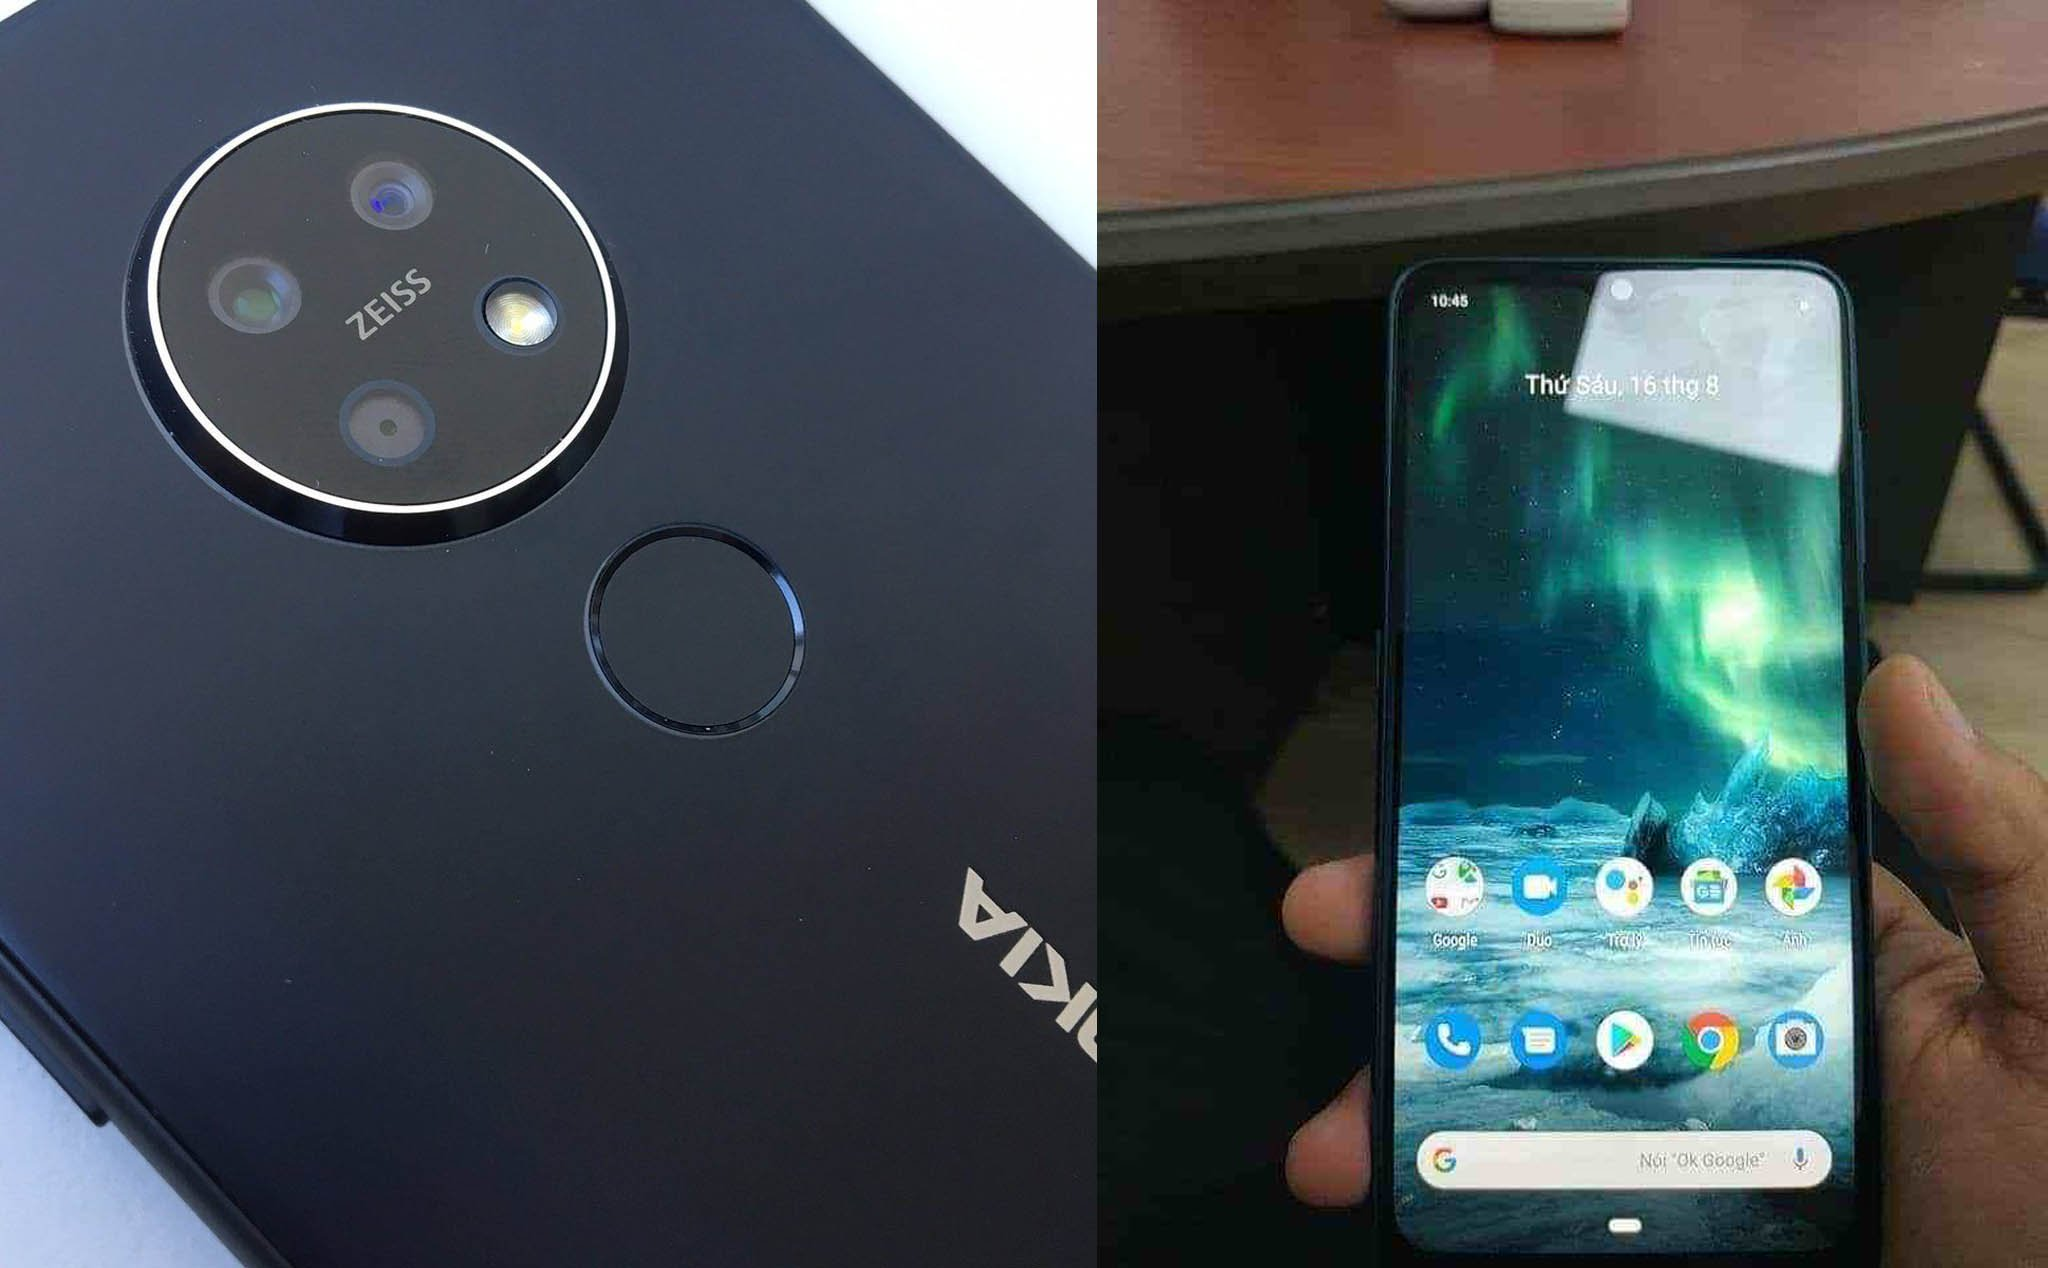 A Zeiss director revealed Nokia 7.2 images